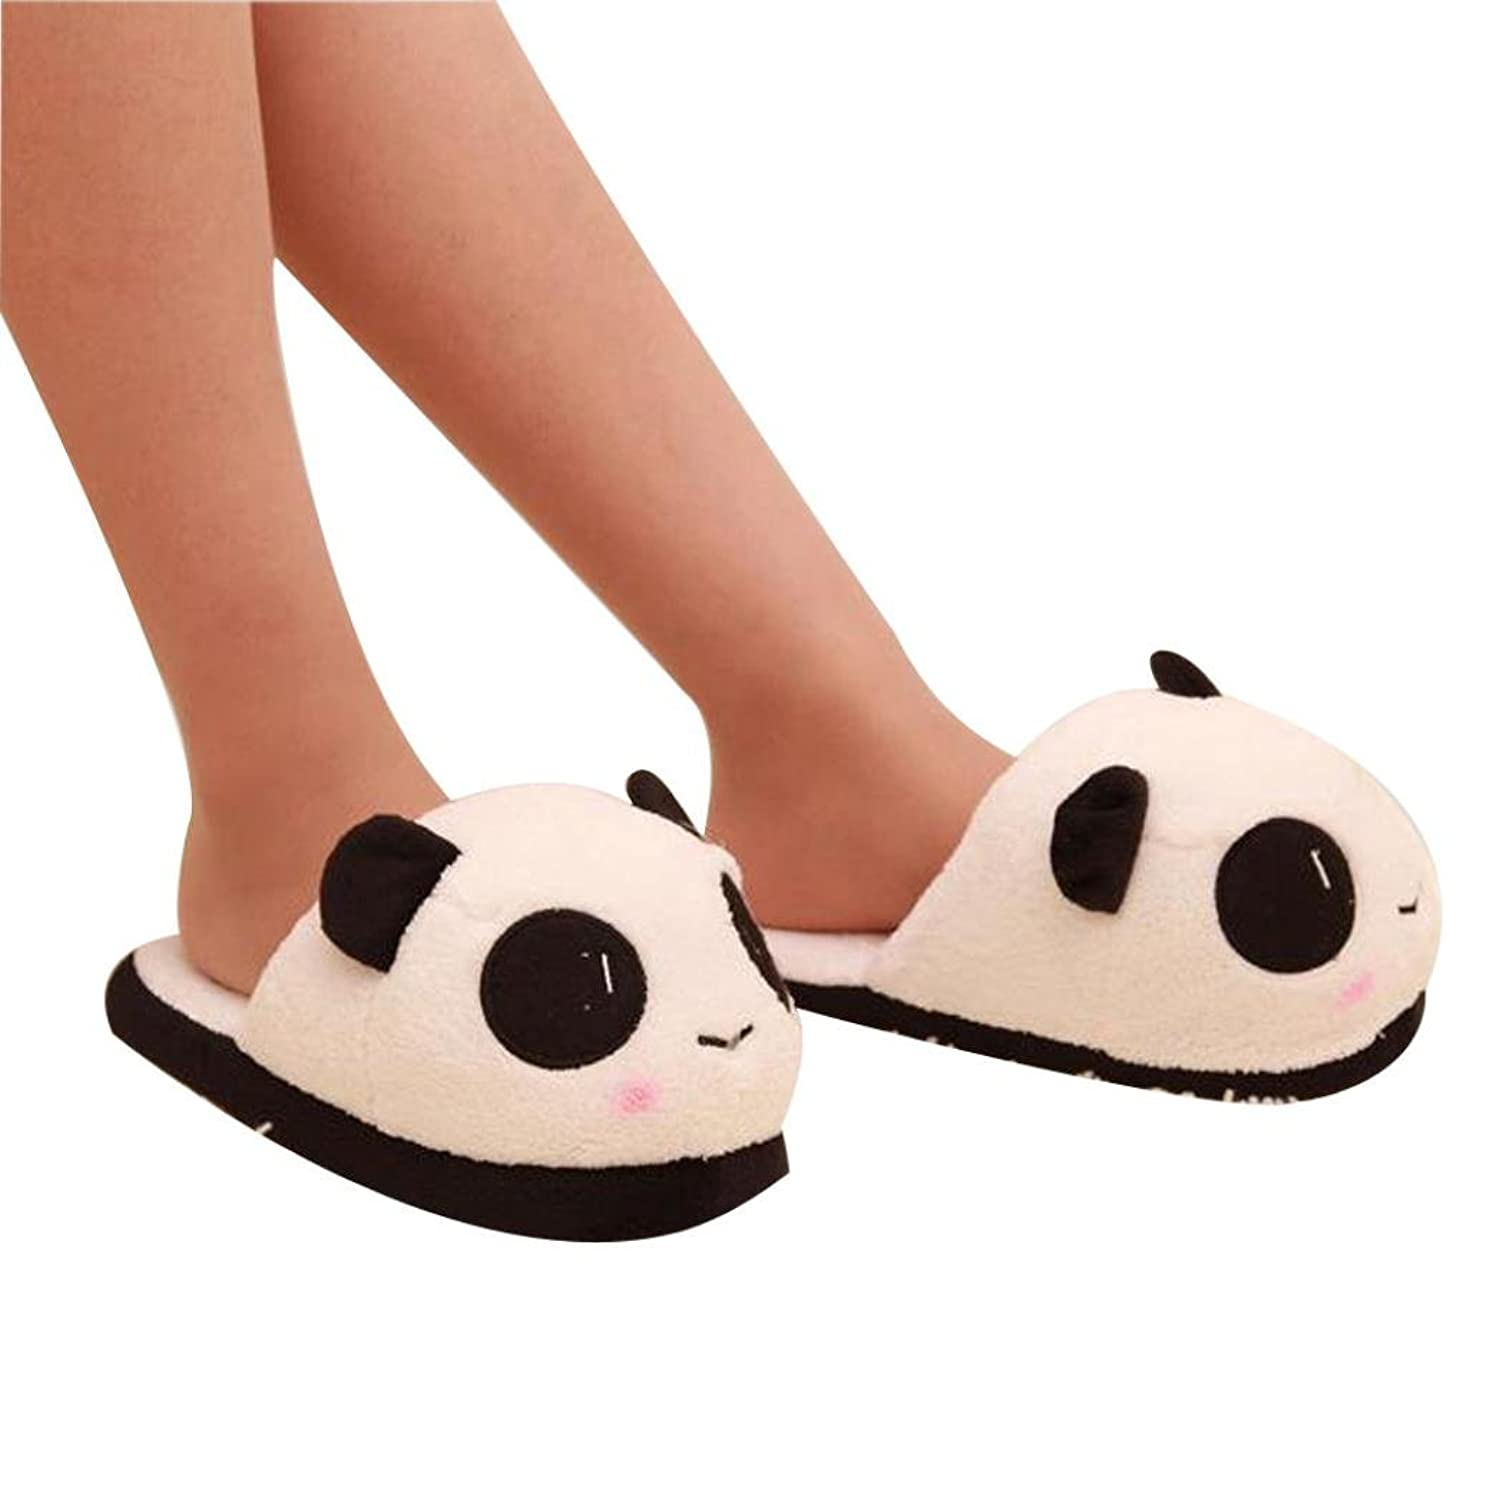 Creazy Women Panda Winter Warm Plush Antiskid Indoor Home Slippers